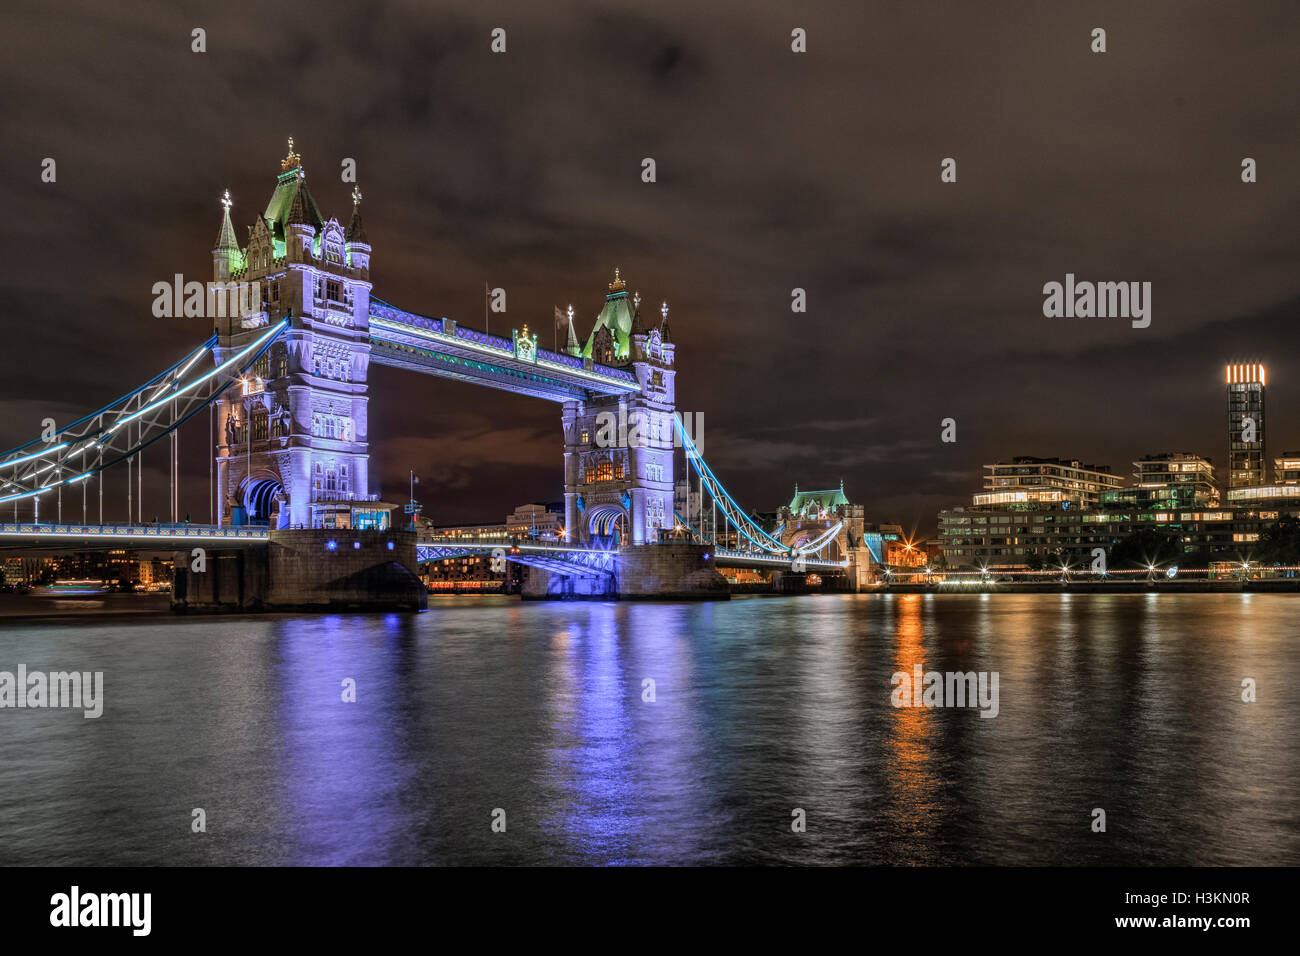 Tower Bridge, London, England, UK Stockbild